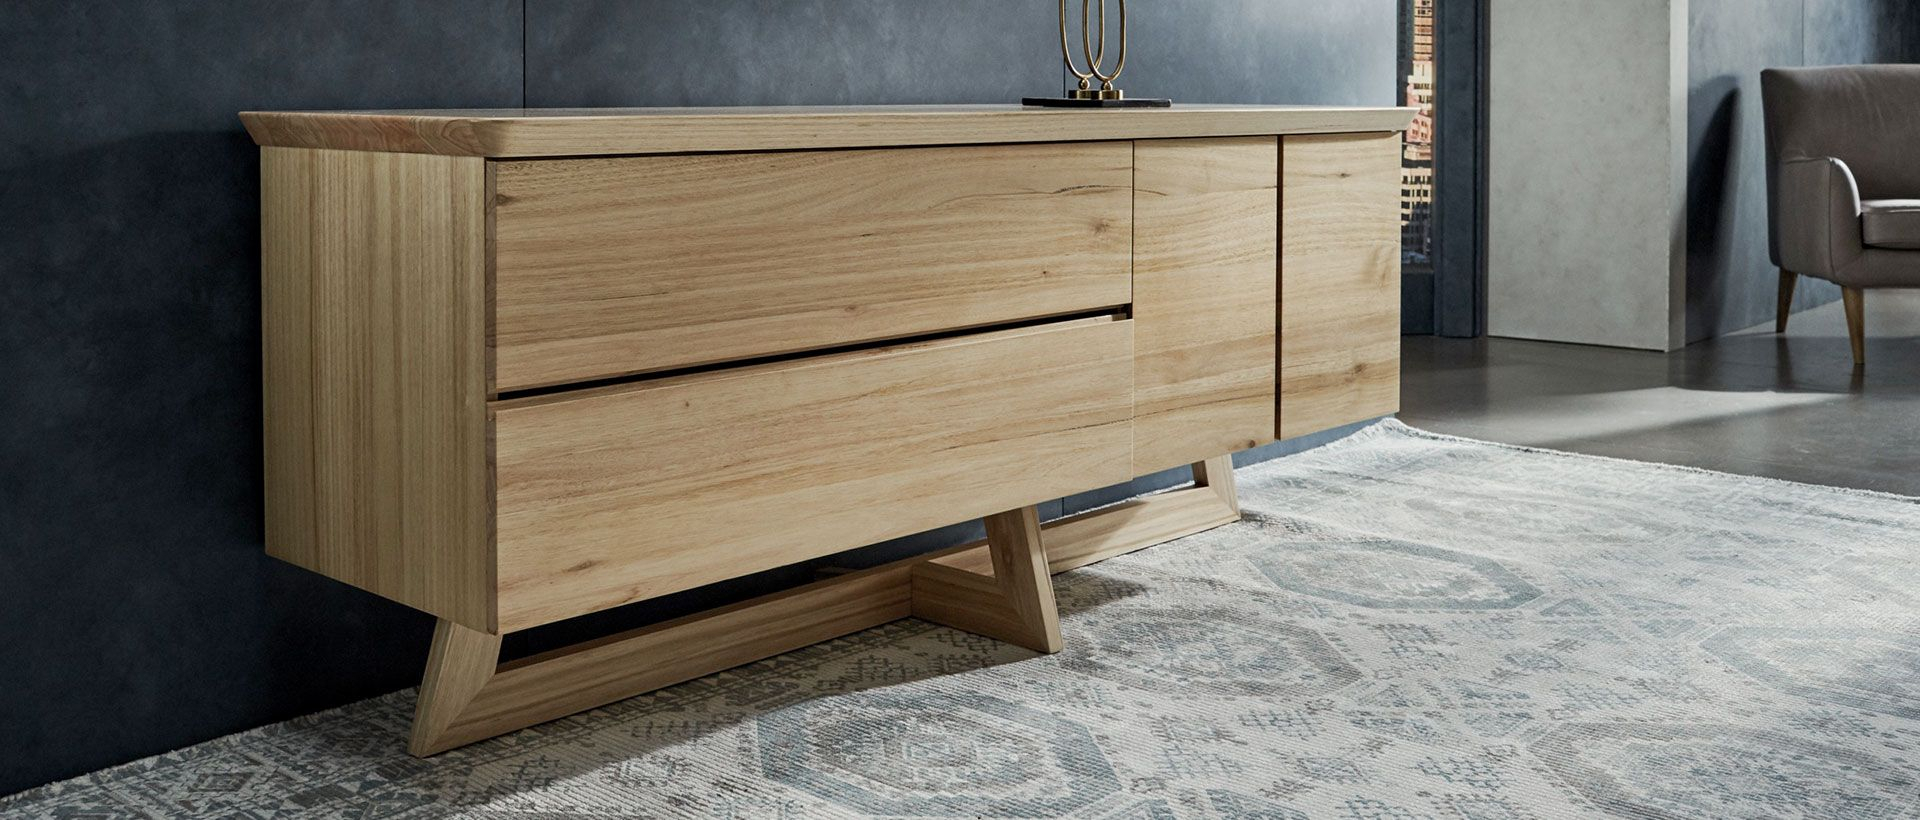 Buffets, Cabinets & Sideboards | Nick Scali throughout Modern Natural Oak Dining Buffets (Image 4 of 30)